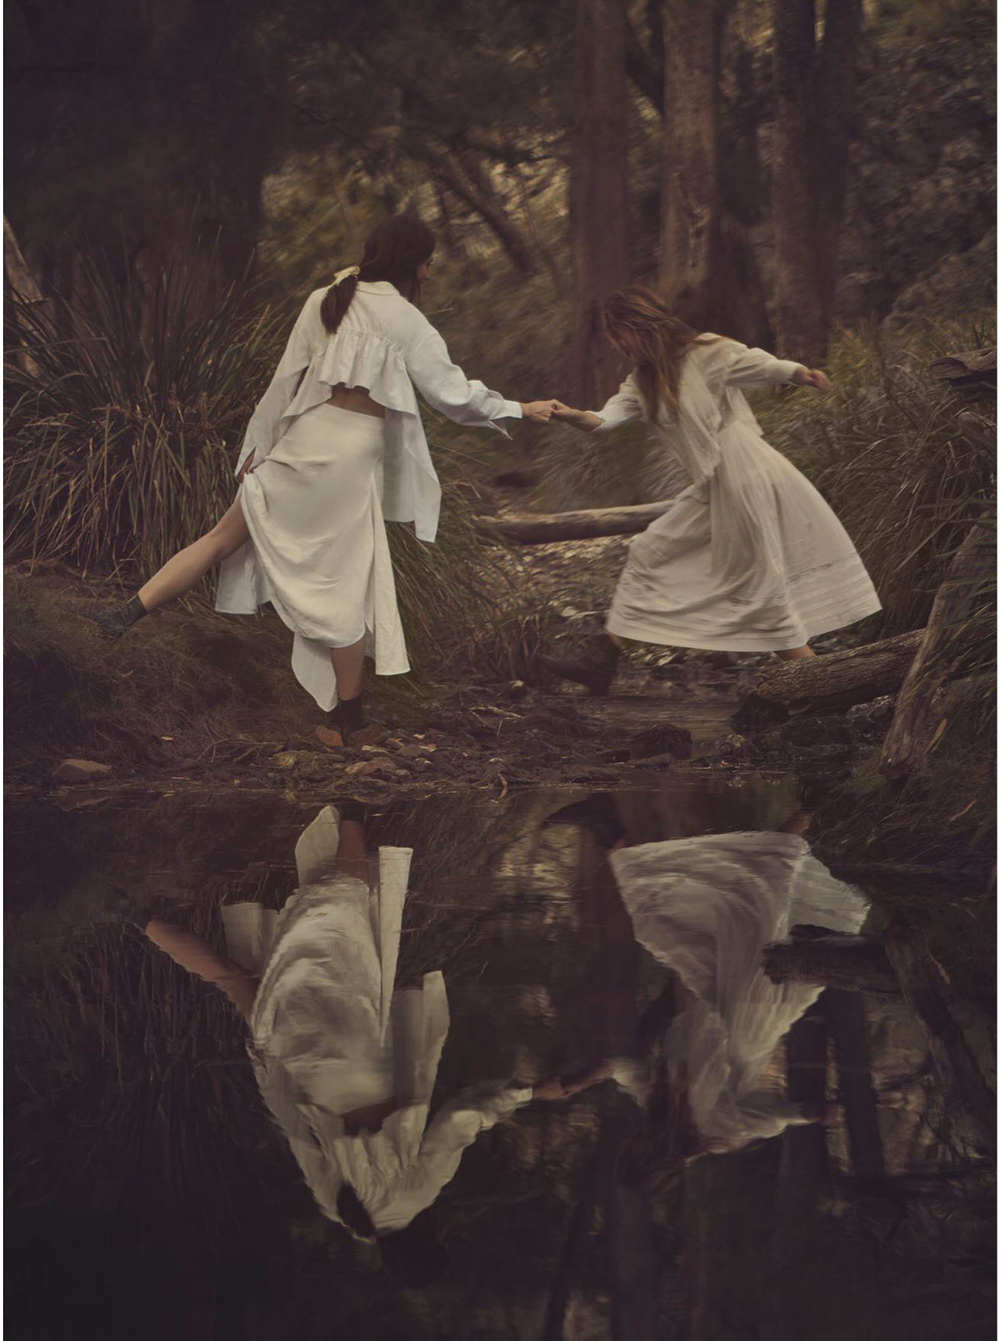 teresa-palmer-phoebe-tonkin-by-will-davidson-for-vogue-australia-march-2015-13-1.png